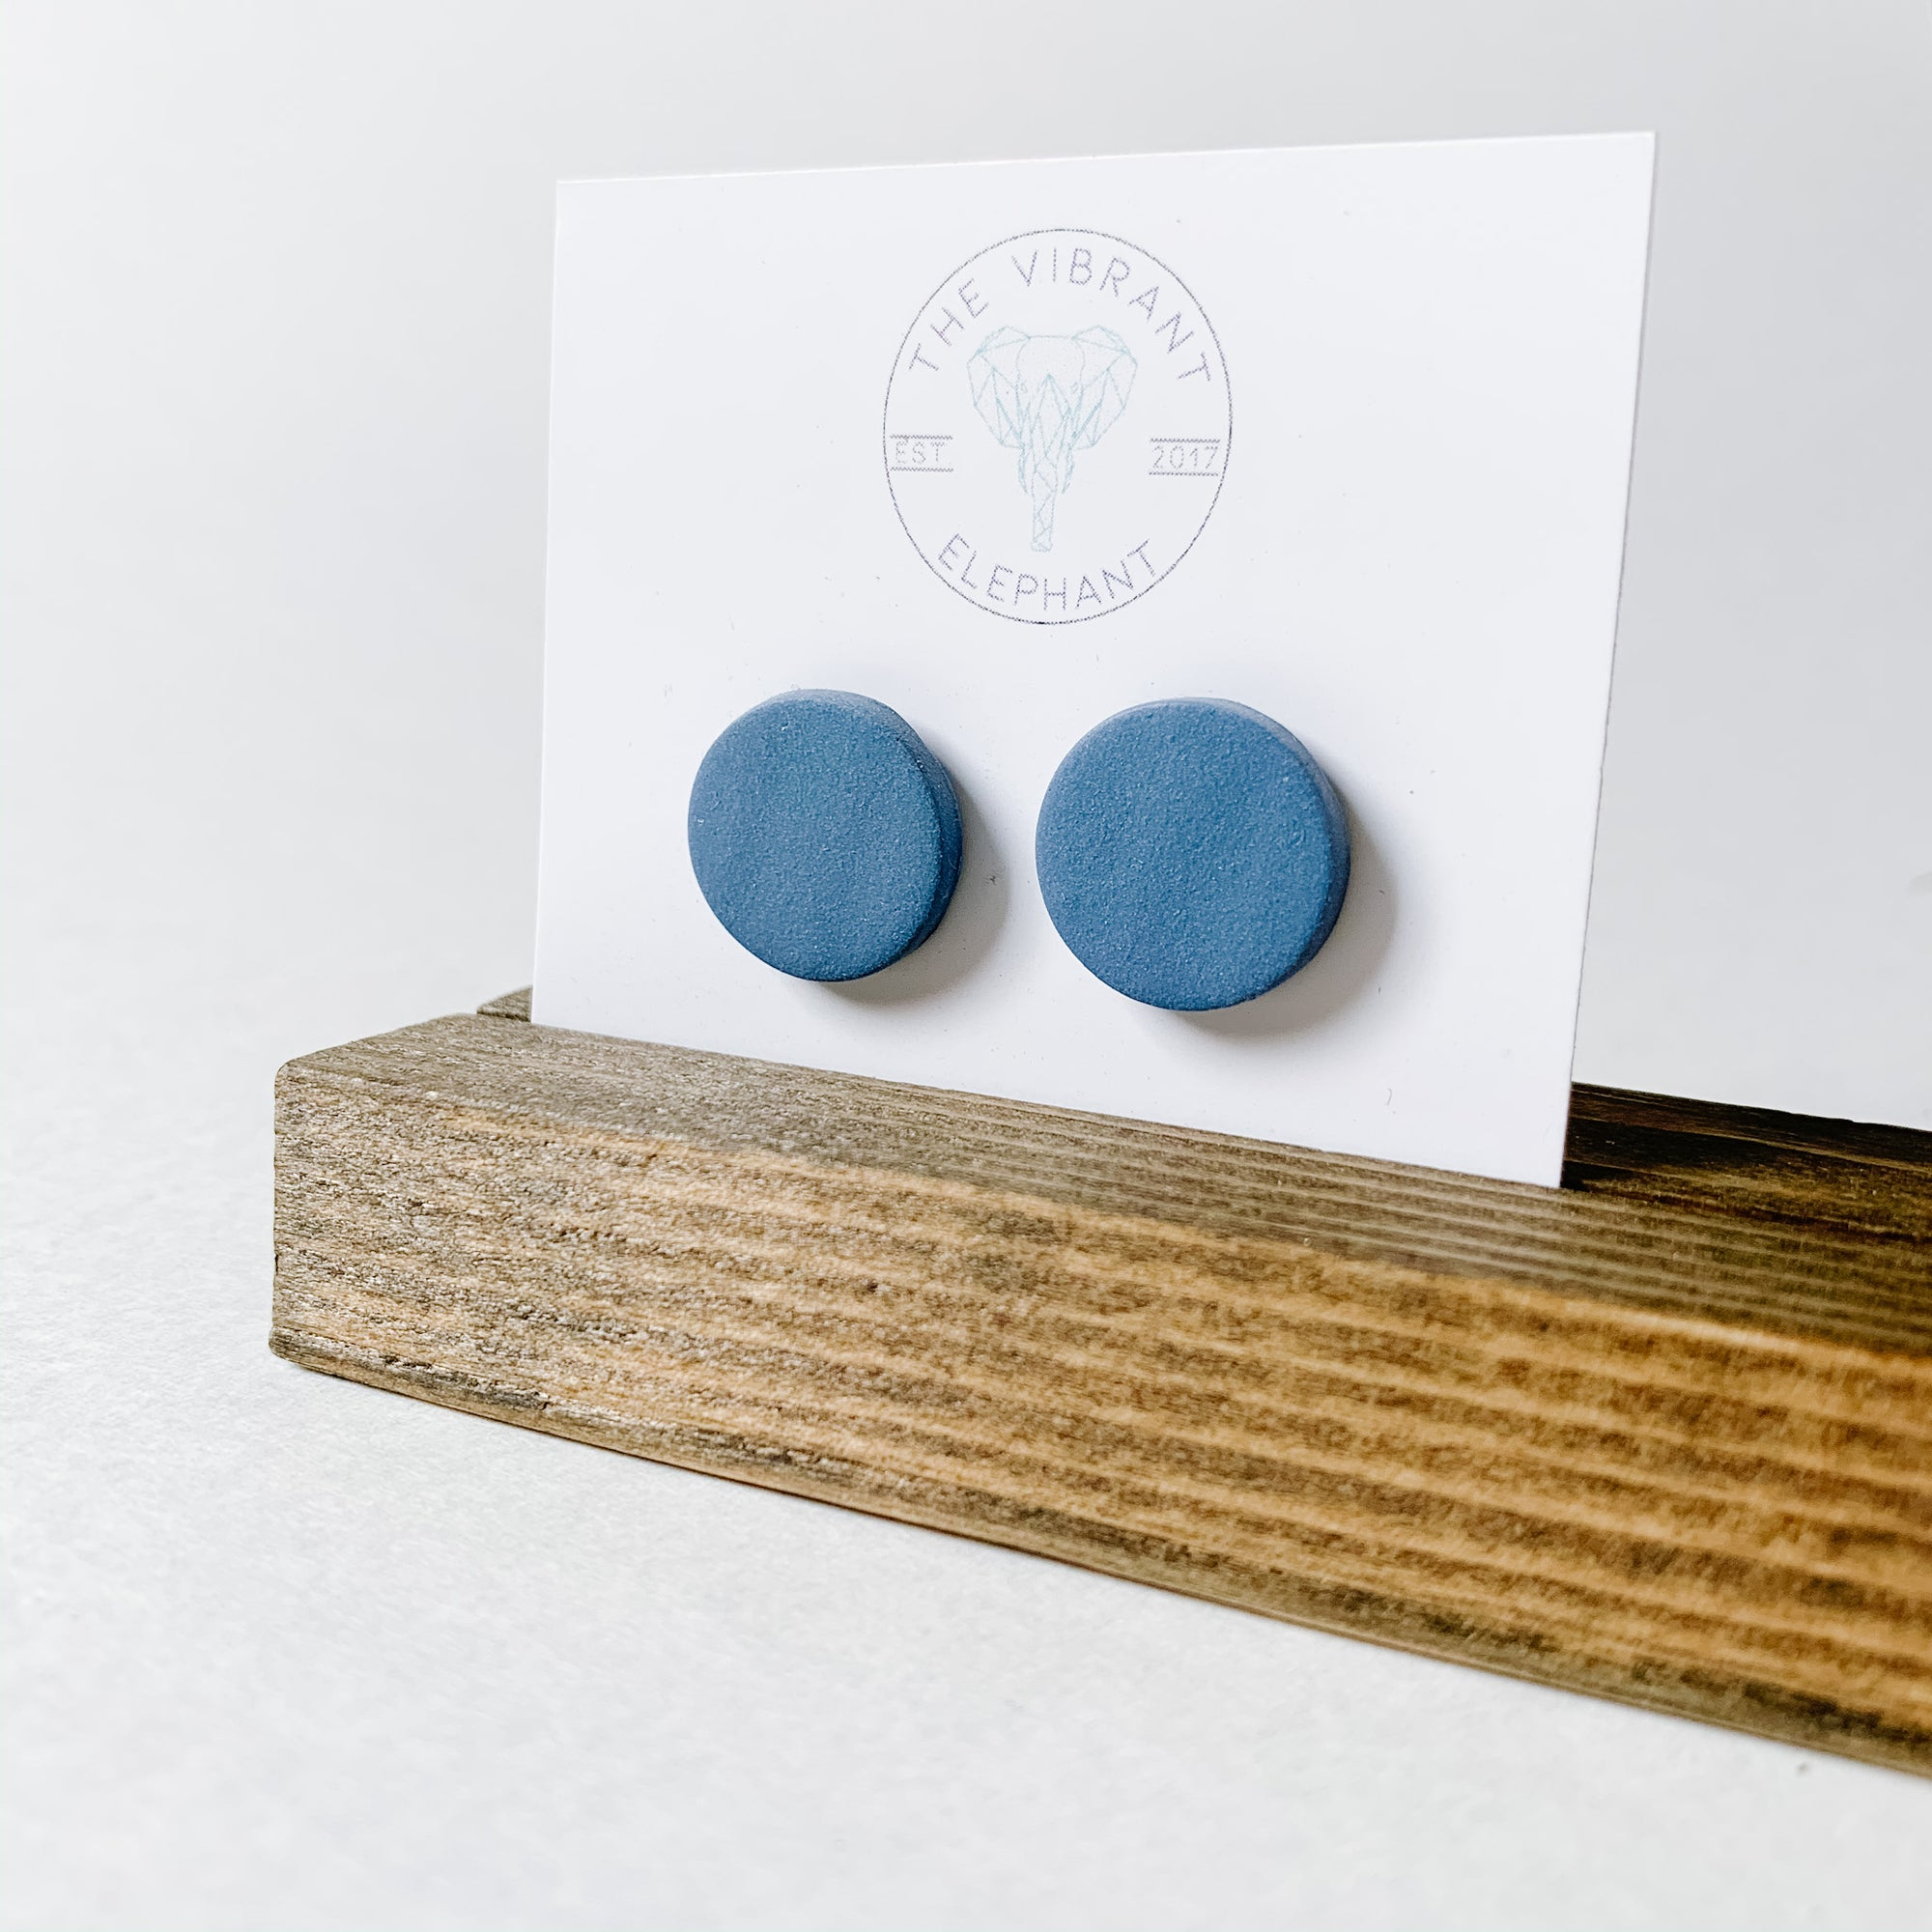 Polymer Clay Stud Earring - Solids Round Blue - Femme Wares Niagara Local Small Business